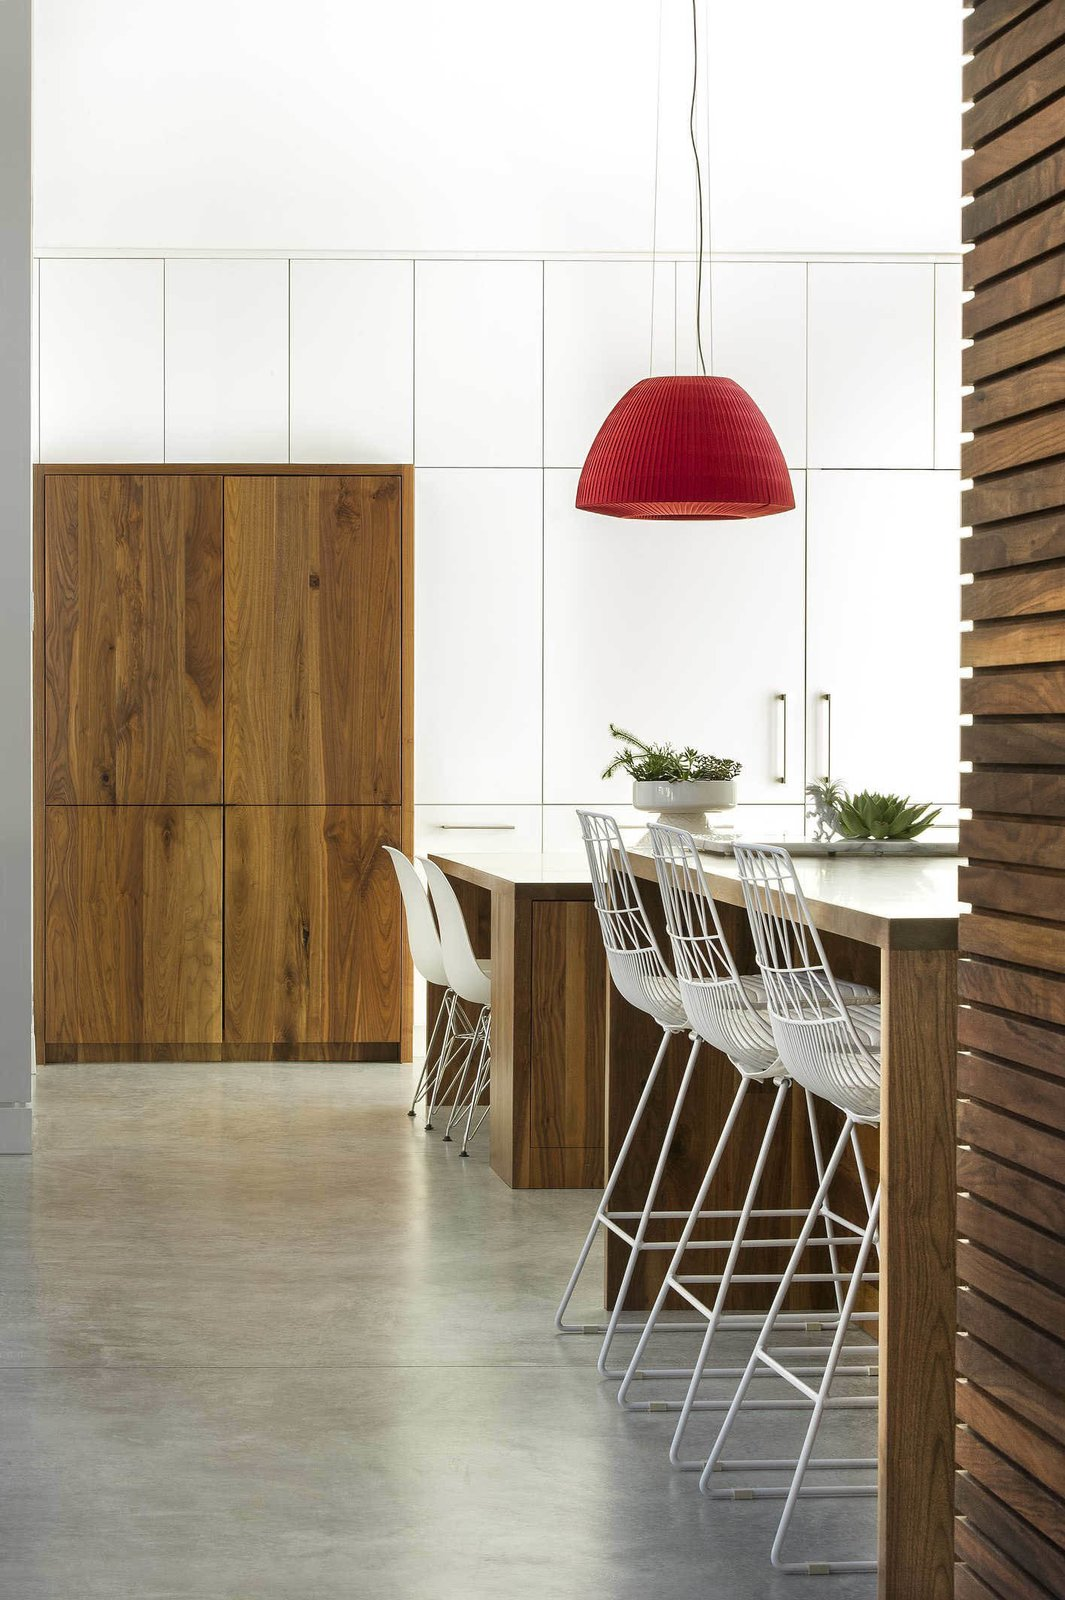 Kitchen, Concrete Floor, Pendant Lighting, and Wood Cabinet The floors in the kitchen are polished concrete.  Photo 5 of 7 in A Modern Home For a Design-Savvy Family in Florida